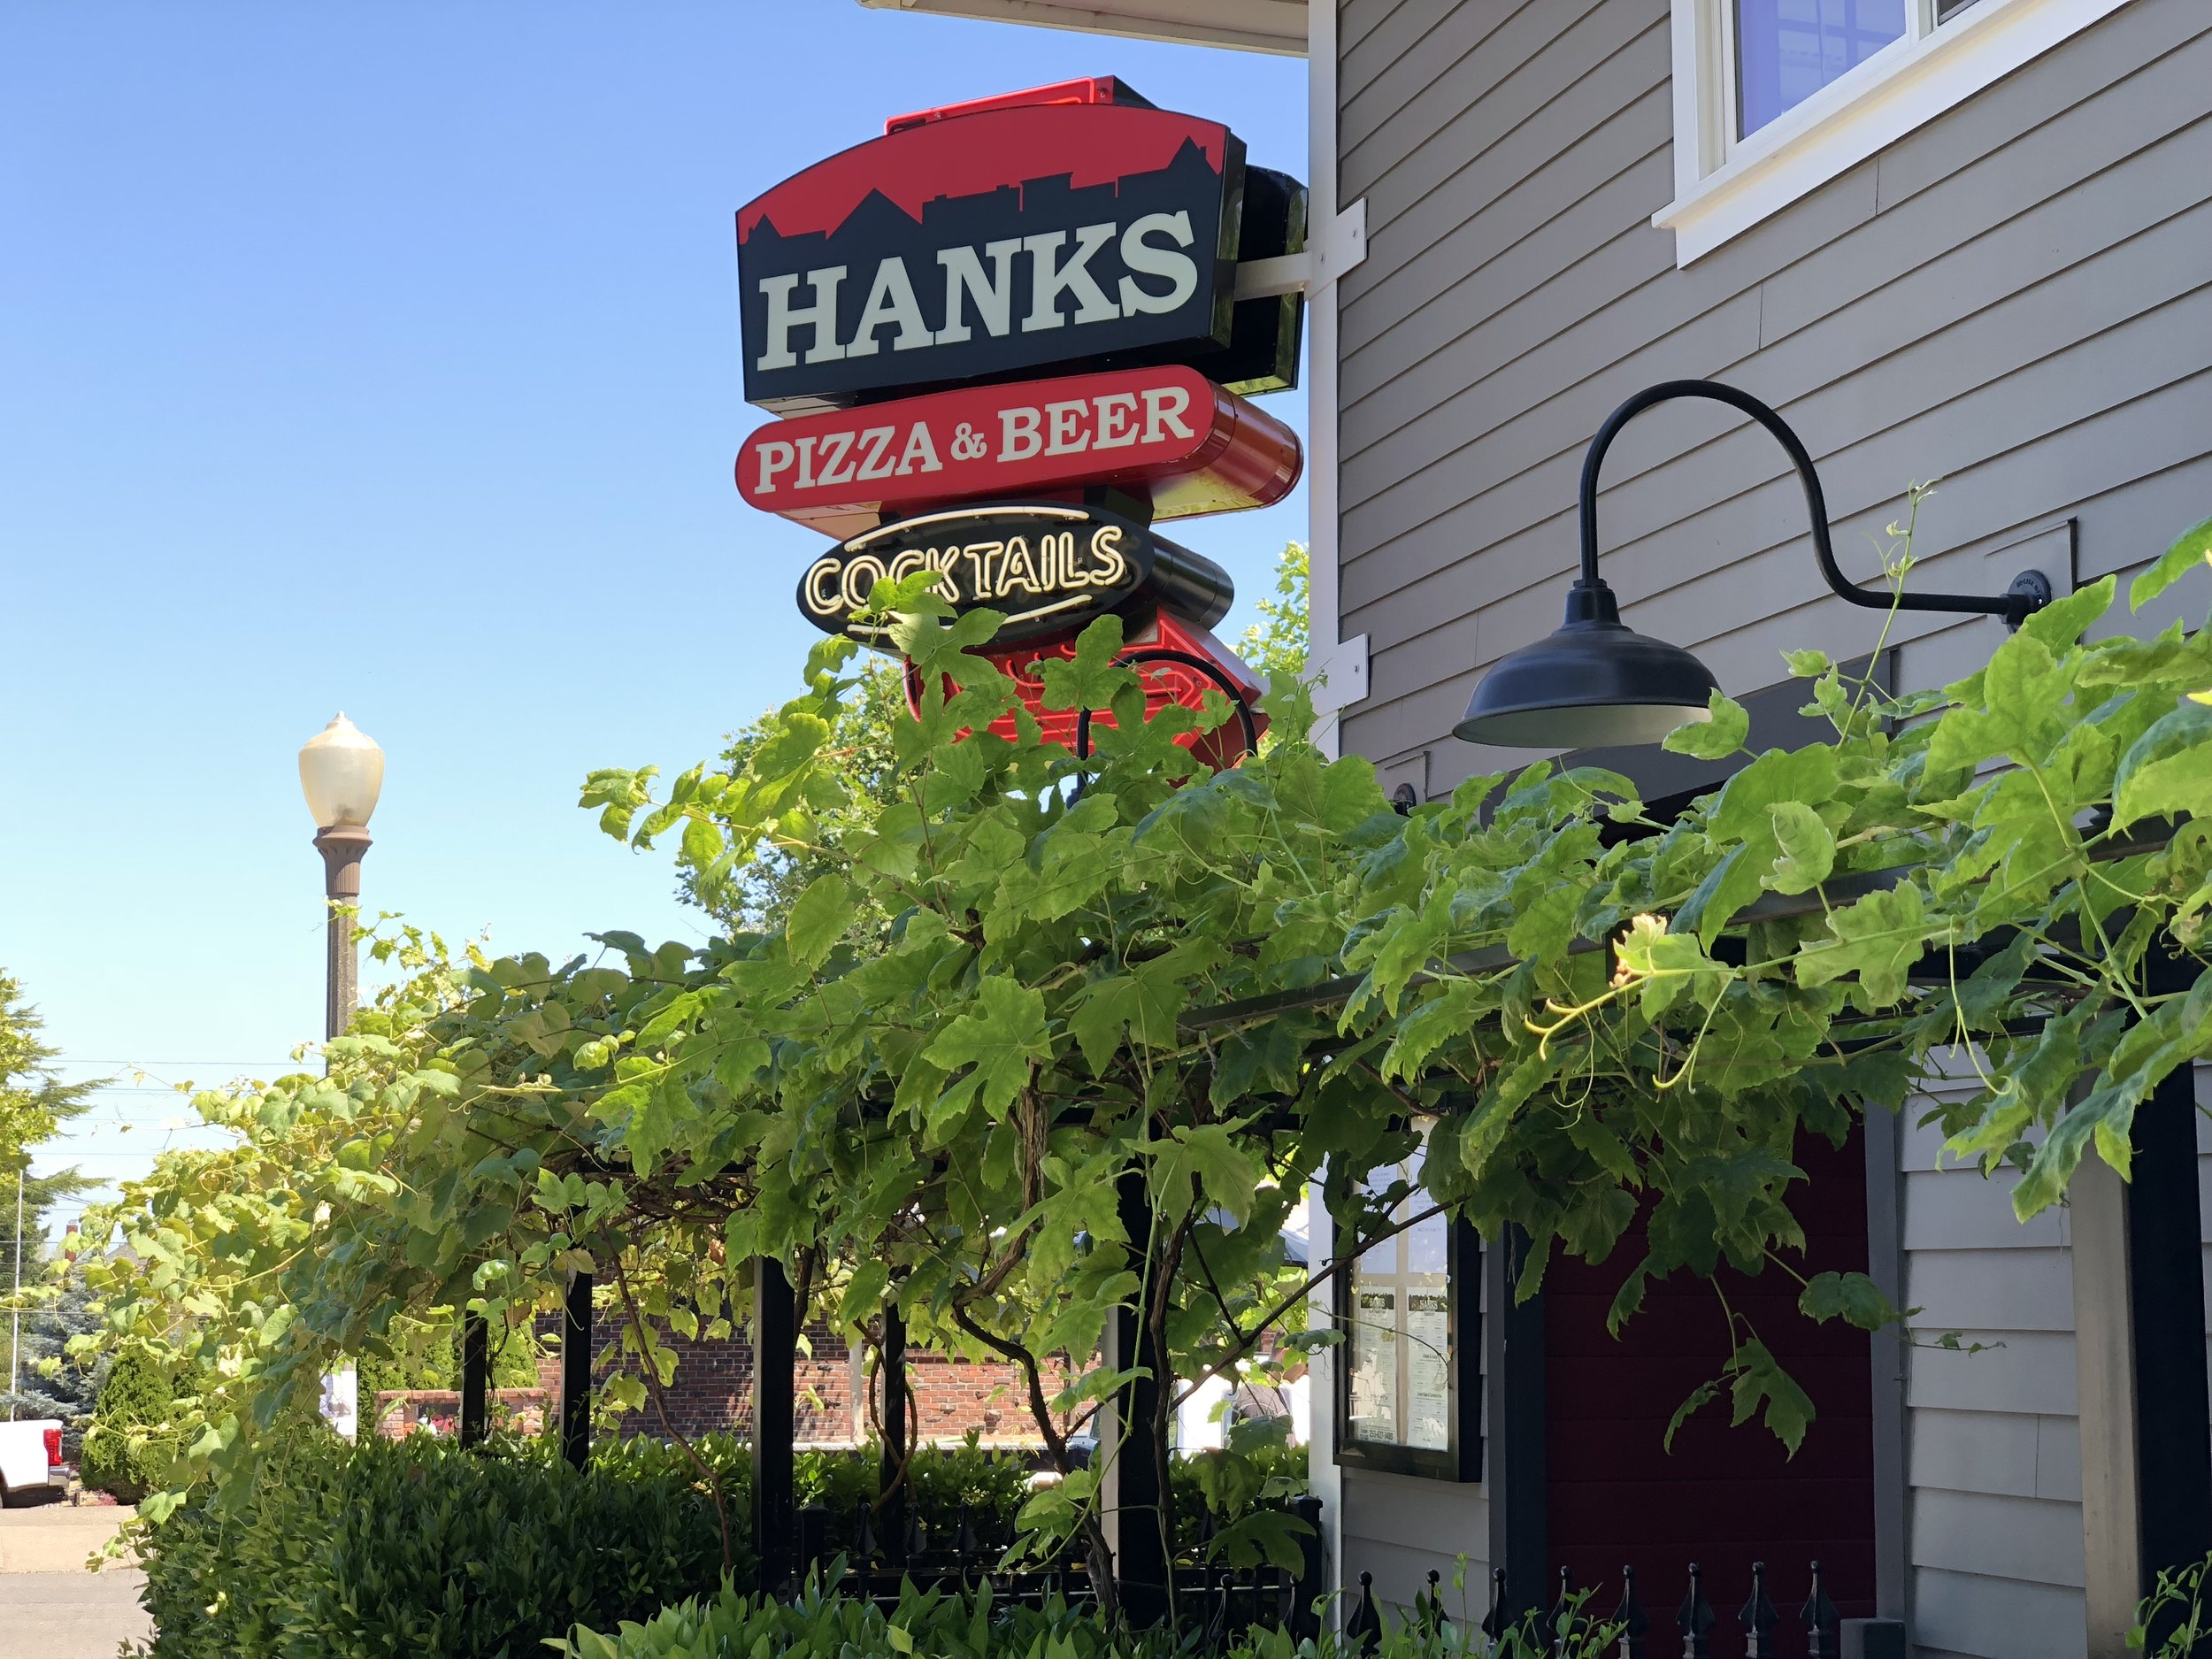 Hanks is a North Tacoma favorite for drinks on the patio and pizza too! Plus it's a 7 minute walk from 1011 N K.